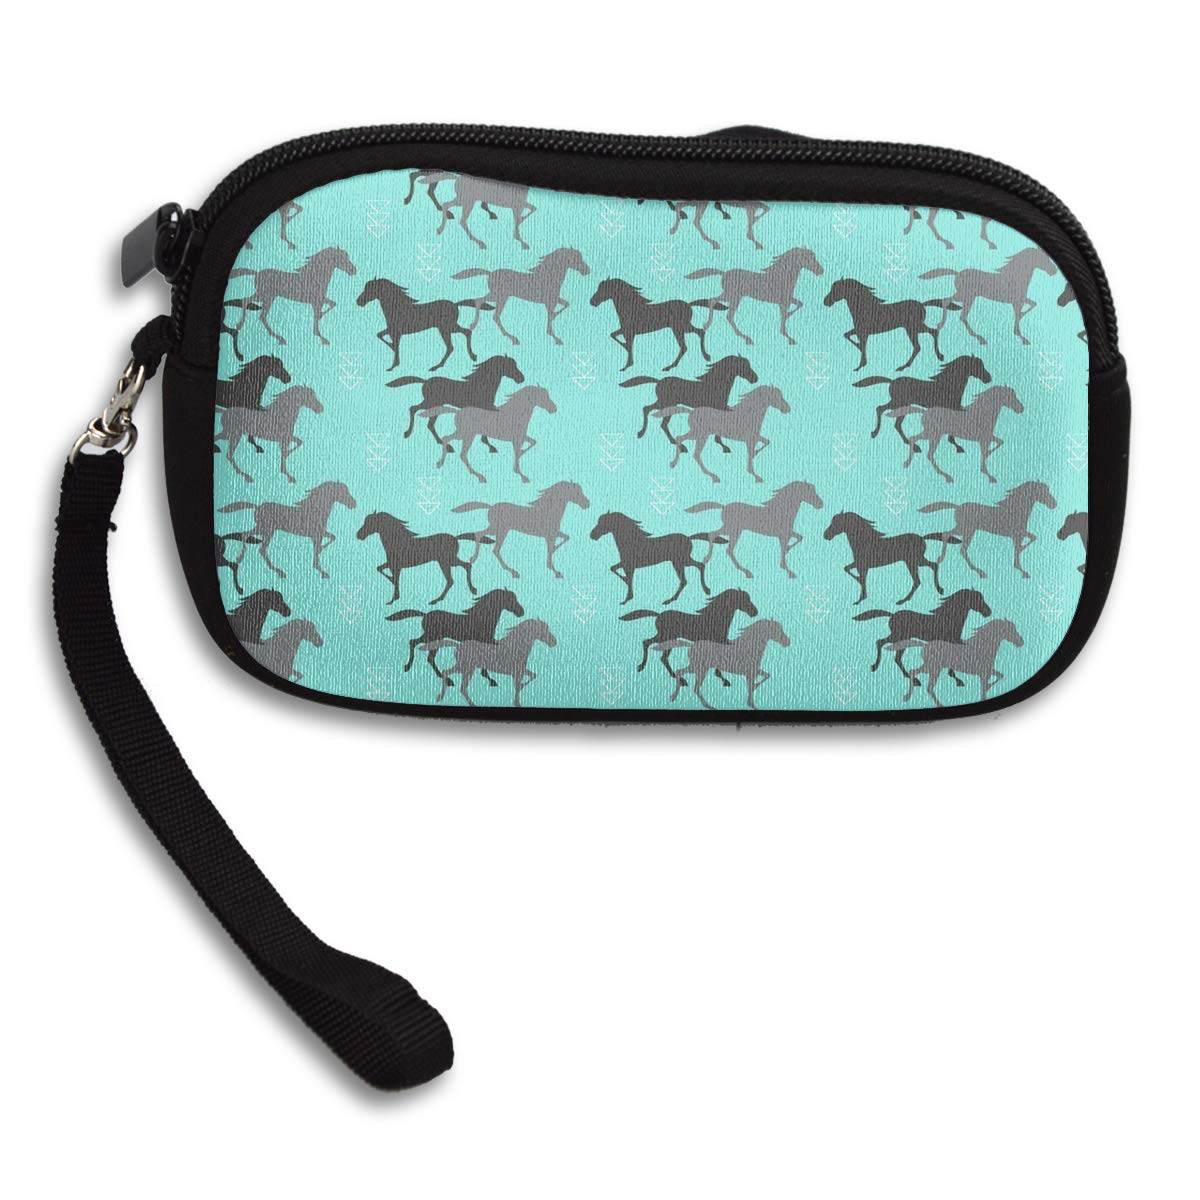 Womens Clutch Wallet Wild Horses Clutch Cell Phone Purse Tote Purse//Luxury Clutch Bag Purses Ladies Purse Extra Capacity Evening Bag